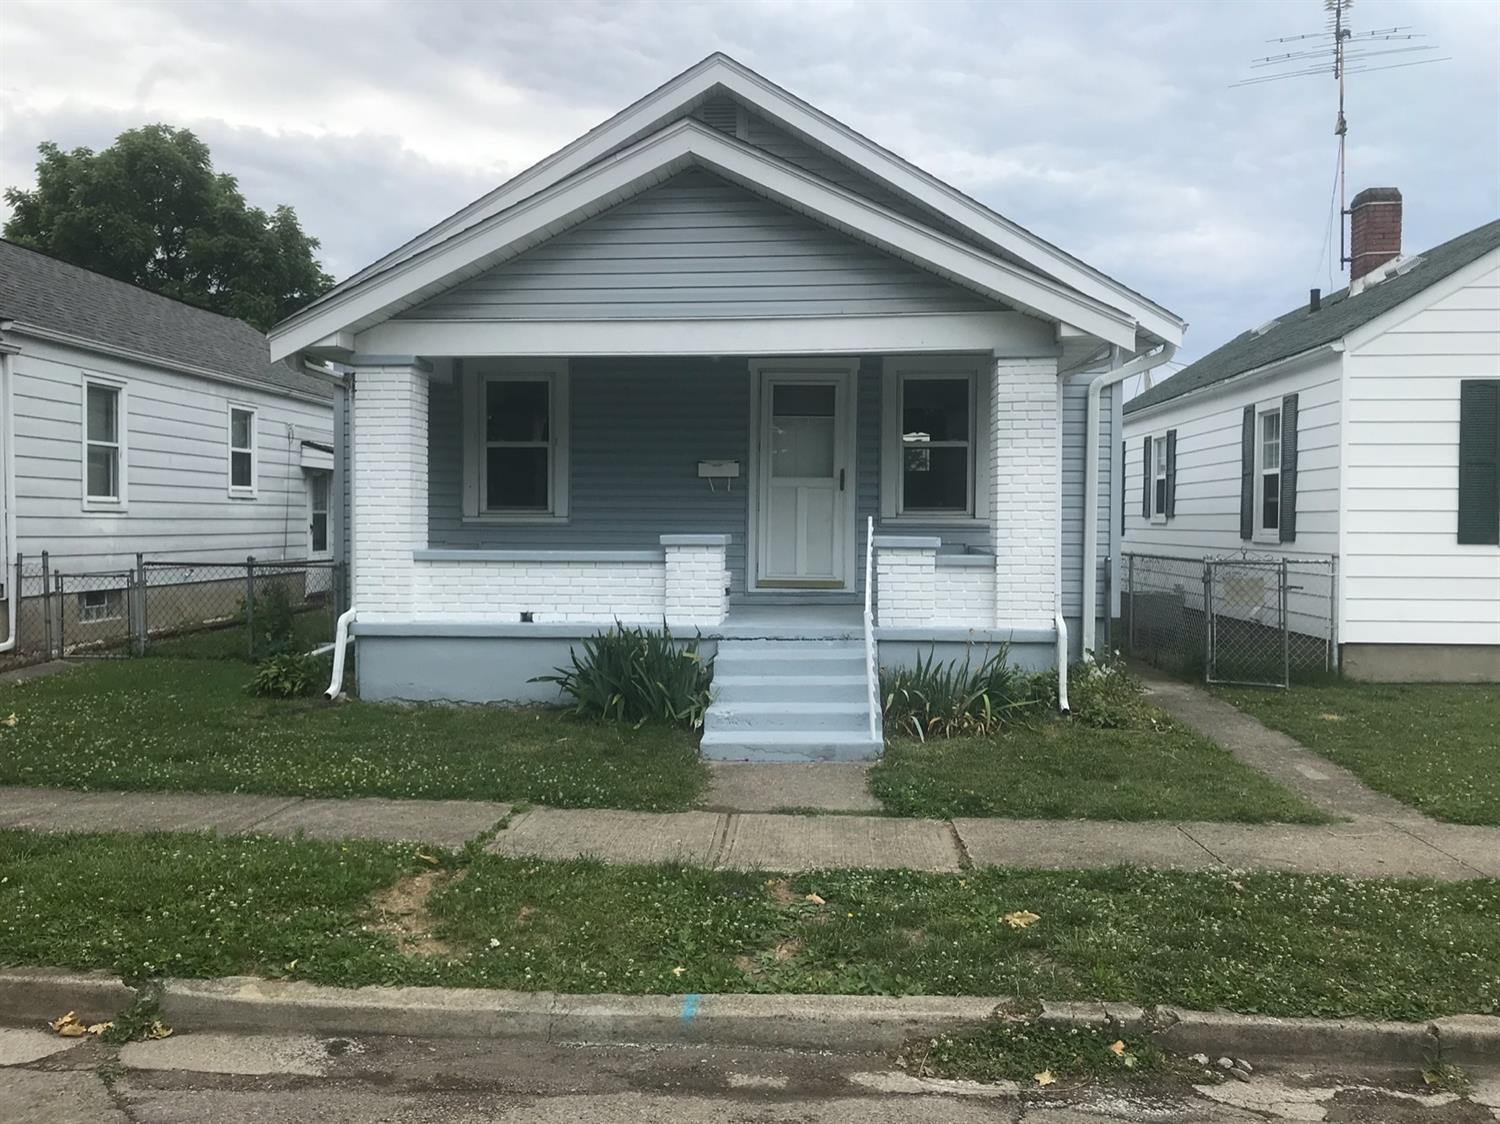 Location, Yard, Garage! this home has them all. Clean, quaint and close to Main Street. recently painted rooms plus low maintenance windows and siding leave little to do for the new owners of this charming bungalow.